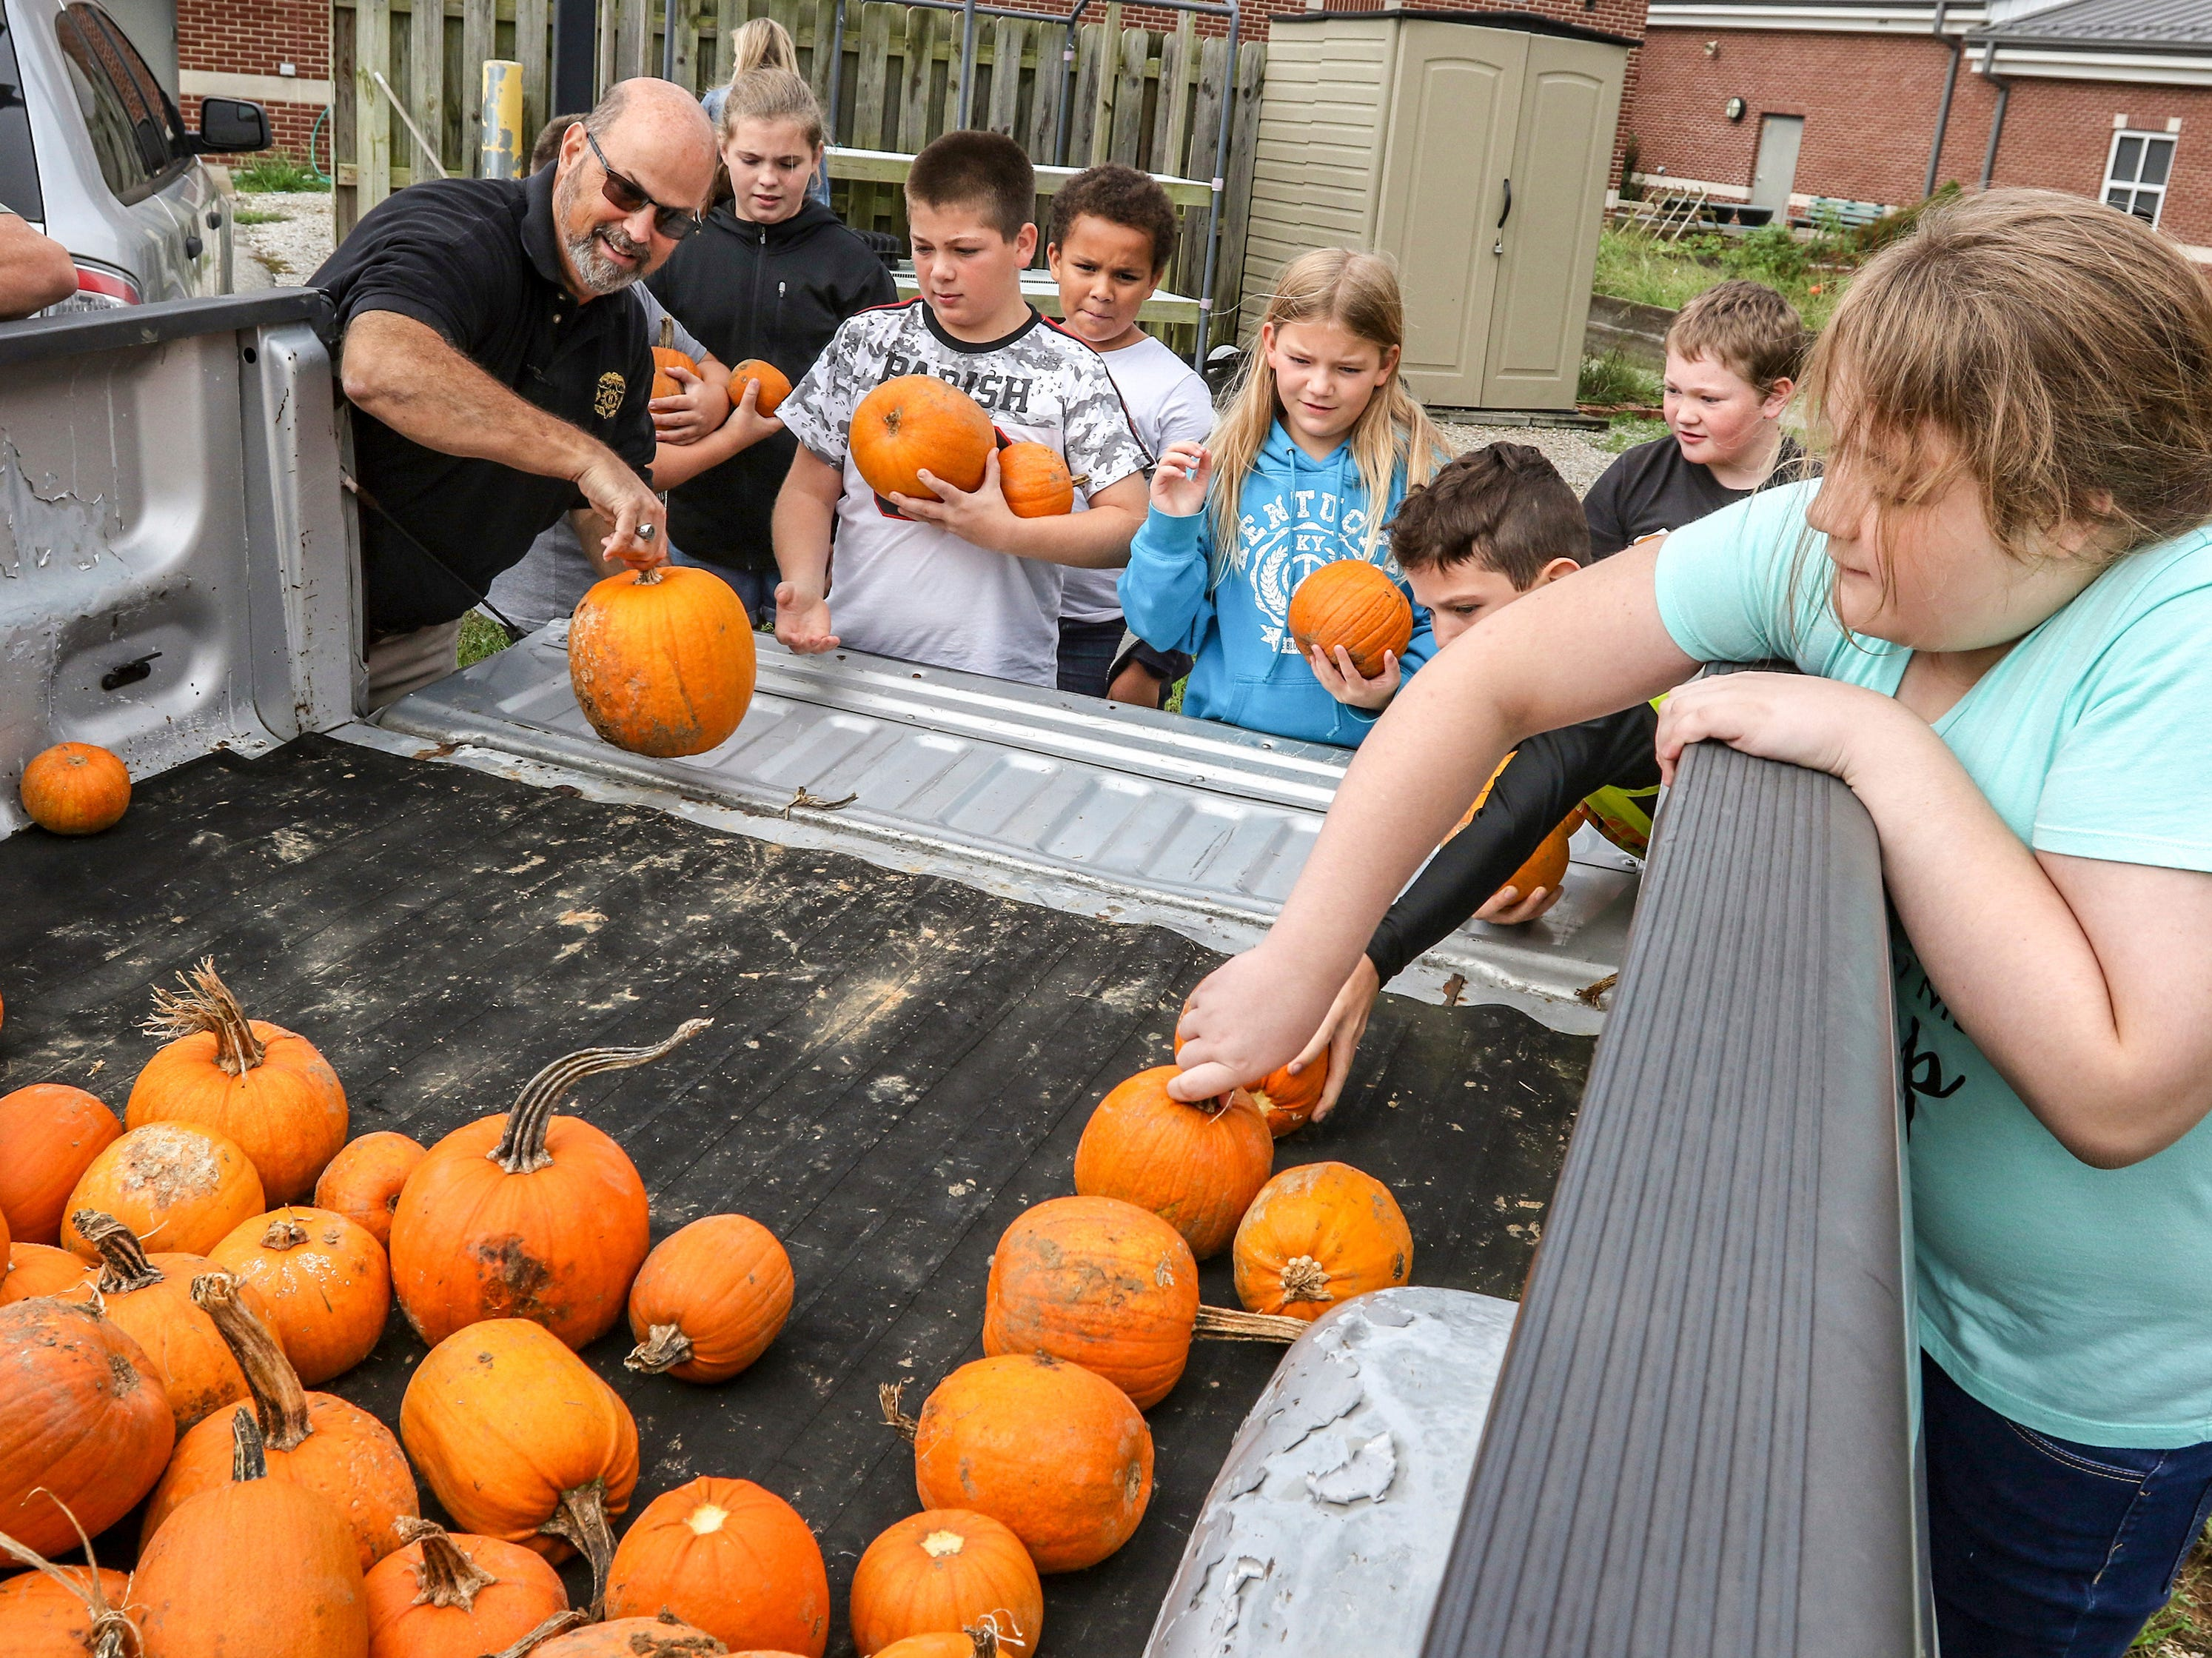 Sgt. Keith Stiff with the Daviess County Detention Center, left, helps West Louisville Elementary School fifth grade students, from left, Adaya Humphrey, William Hoggard, Trevan Coiles, Alyssa Vowels, Corban Waltrip, Robert Davis and Miley Gamblin unload 100 pumpkins from the back of a pickup truck on Sept. 26, 2018, in Owensboro, Ky. The pumpkins, donated by the jail and grown by inmates, will be available for painting during the school's Fall Festival.